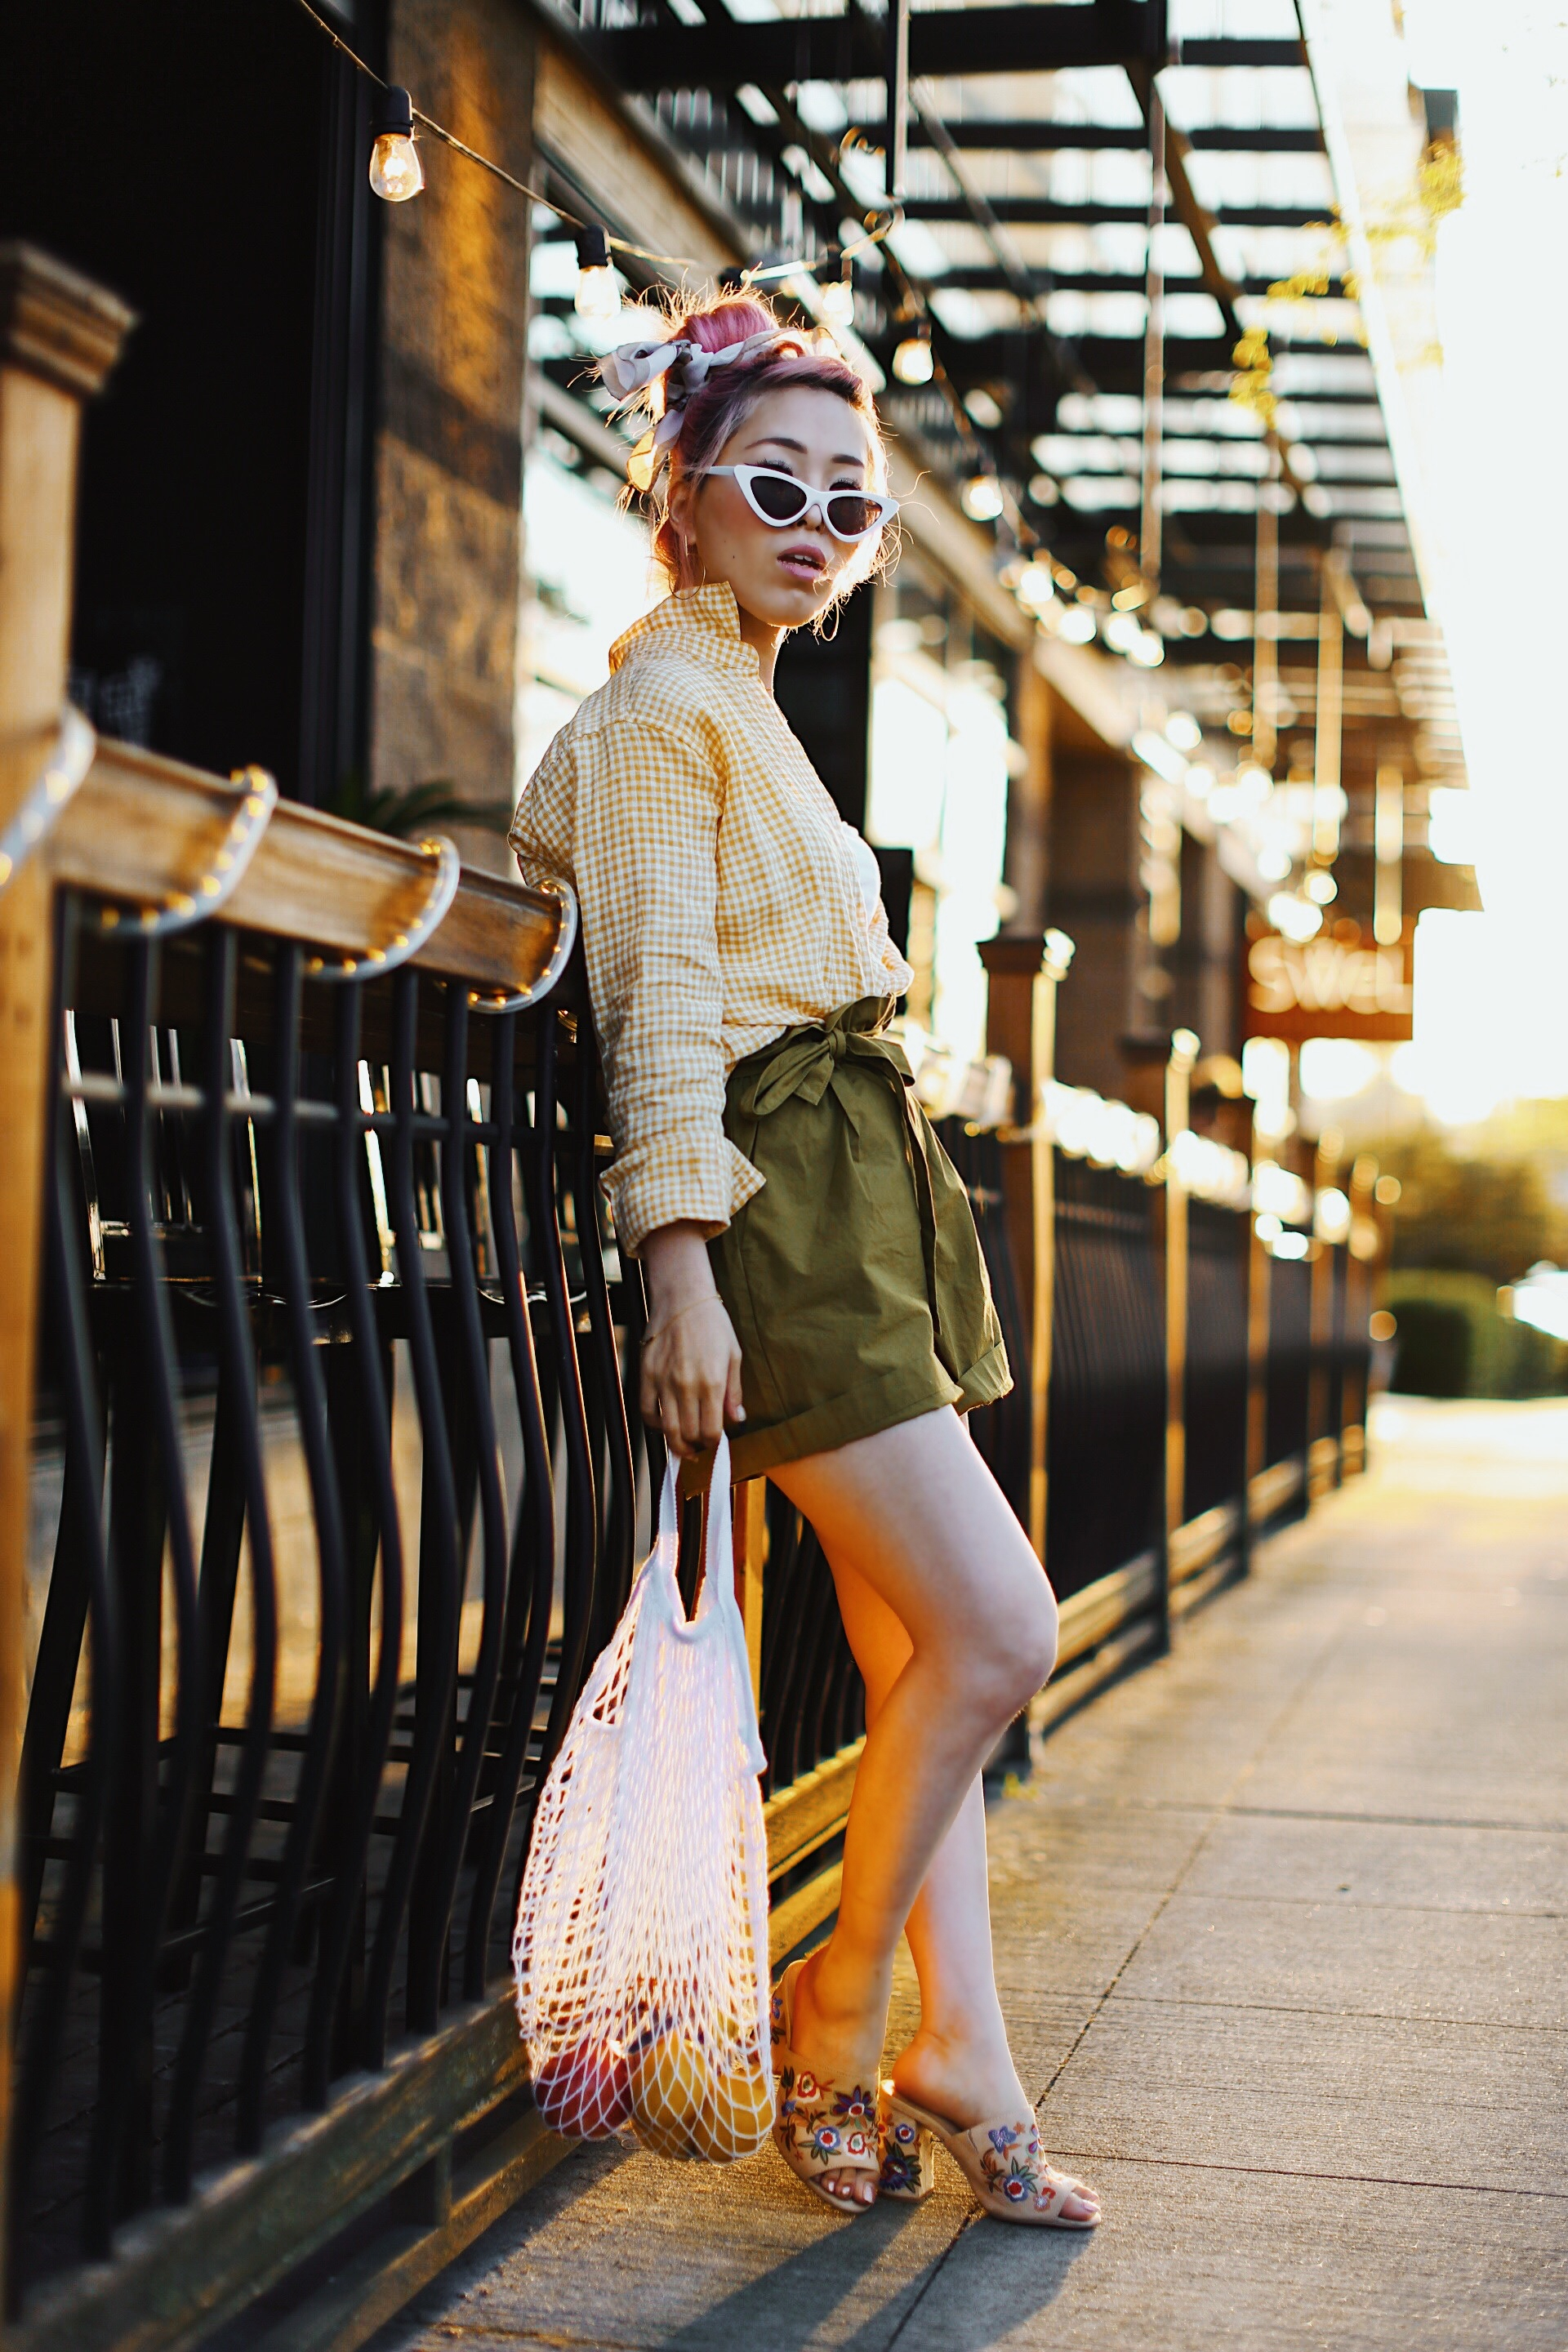 Uniqlo yellow Linen gingham shirt-Uniqlo olive paperbag shorts-Uniqlo Airism bratop-White Cat eye sunglasses ZERO UV- Pipe + Row White net bag-Vintage scarf bun hairstyle-ALDO Embroidered Nude mules-Aika's Love Closet-seattle fashion style blogger-Japanese-pink hair-smiling-spring fashion 6